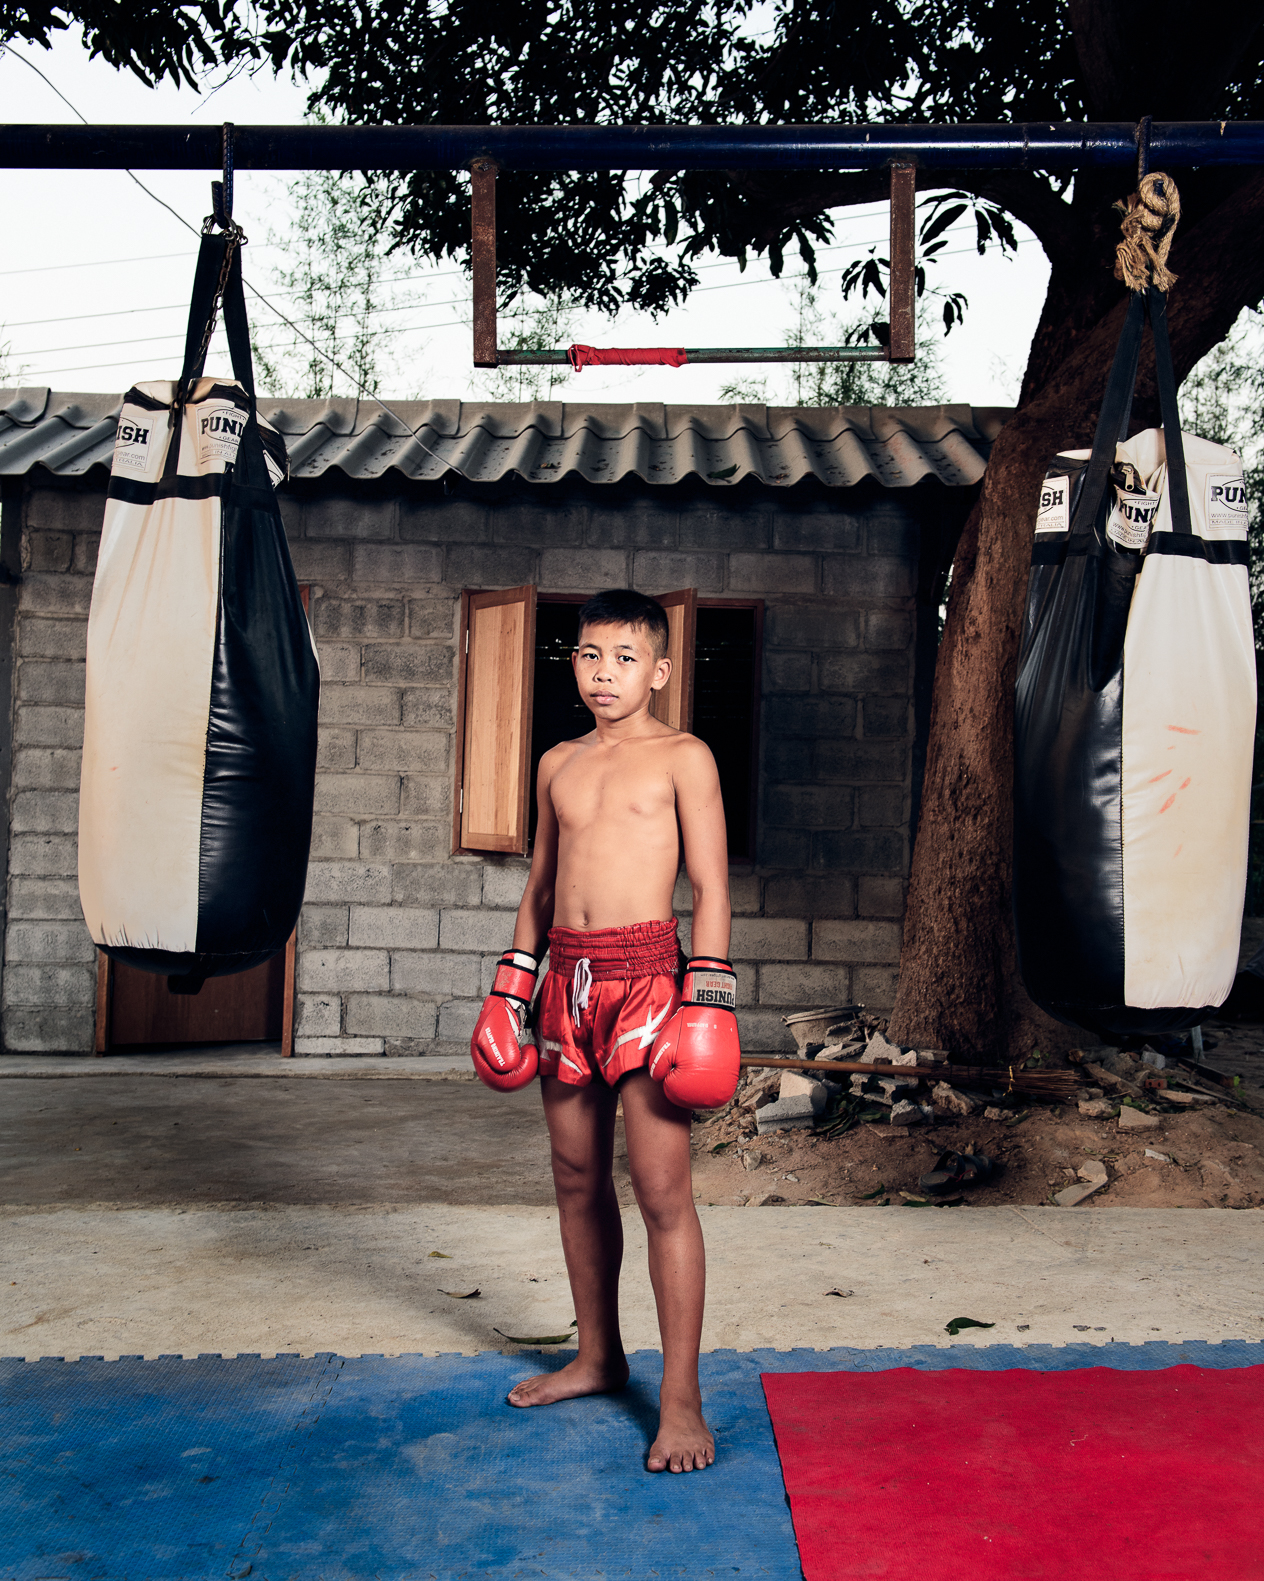 Robert-Paul-Cohen-Photography-little-tigers-muay-thai-6